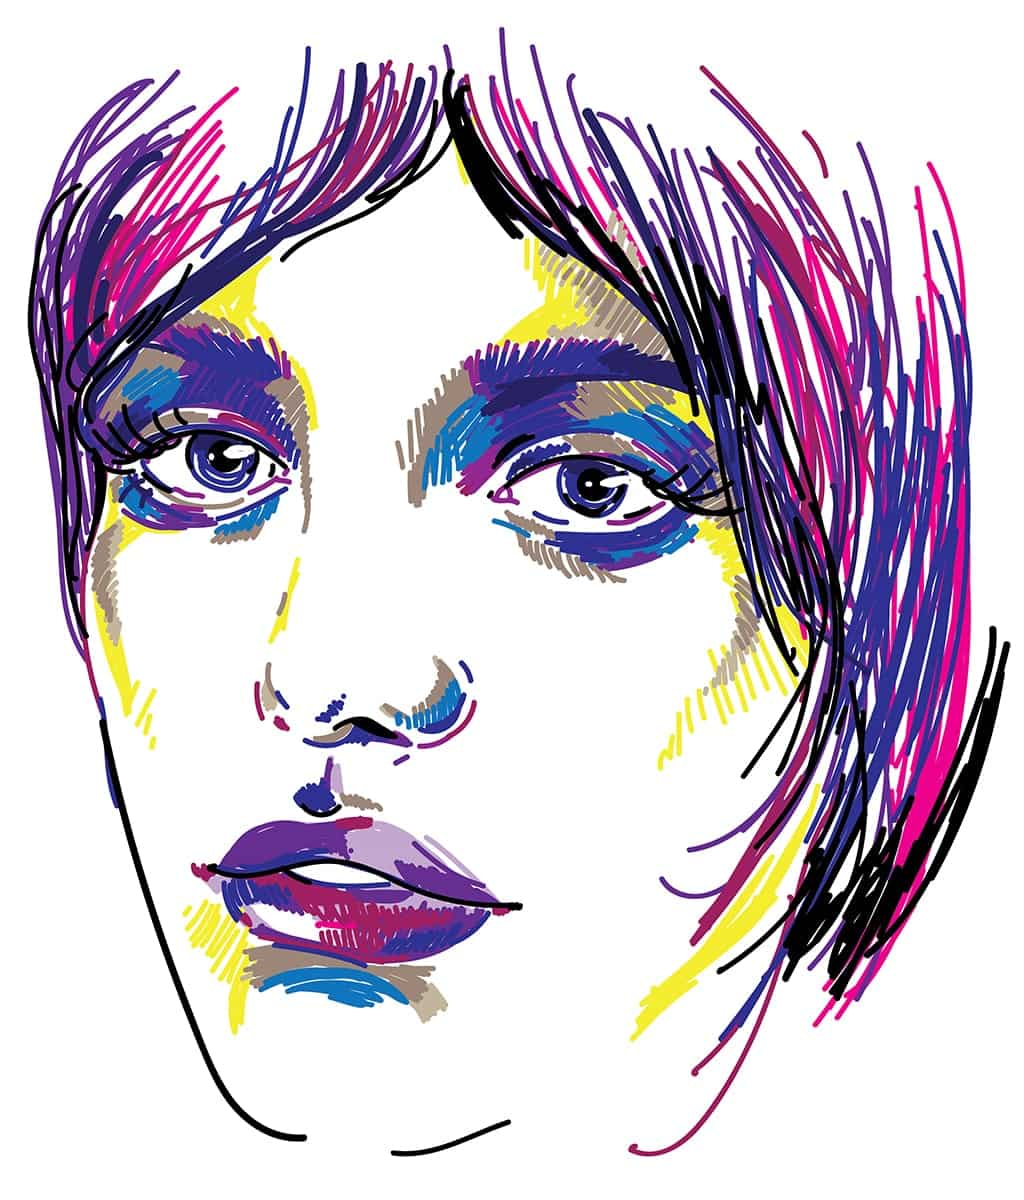 Colorful Sketch Of The Face Of An Androgynous Person